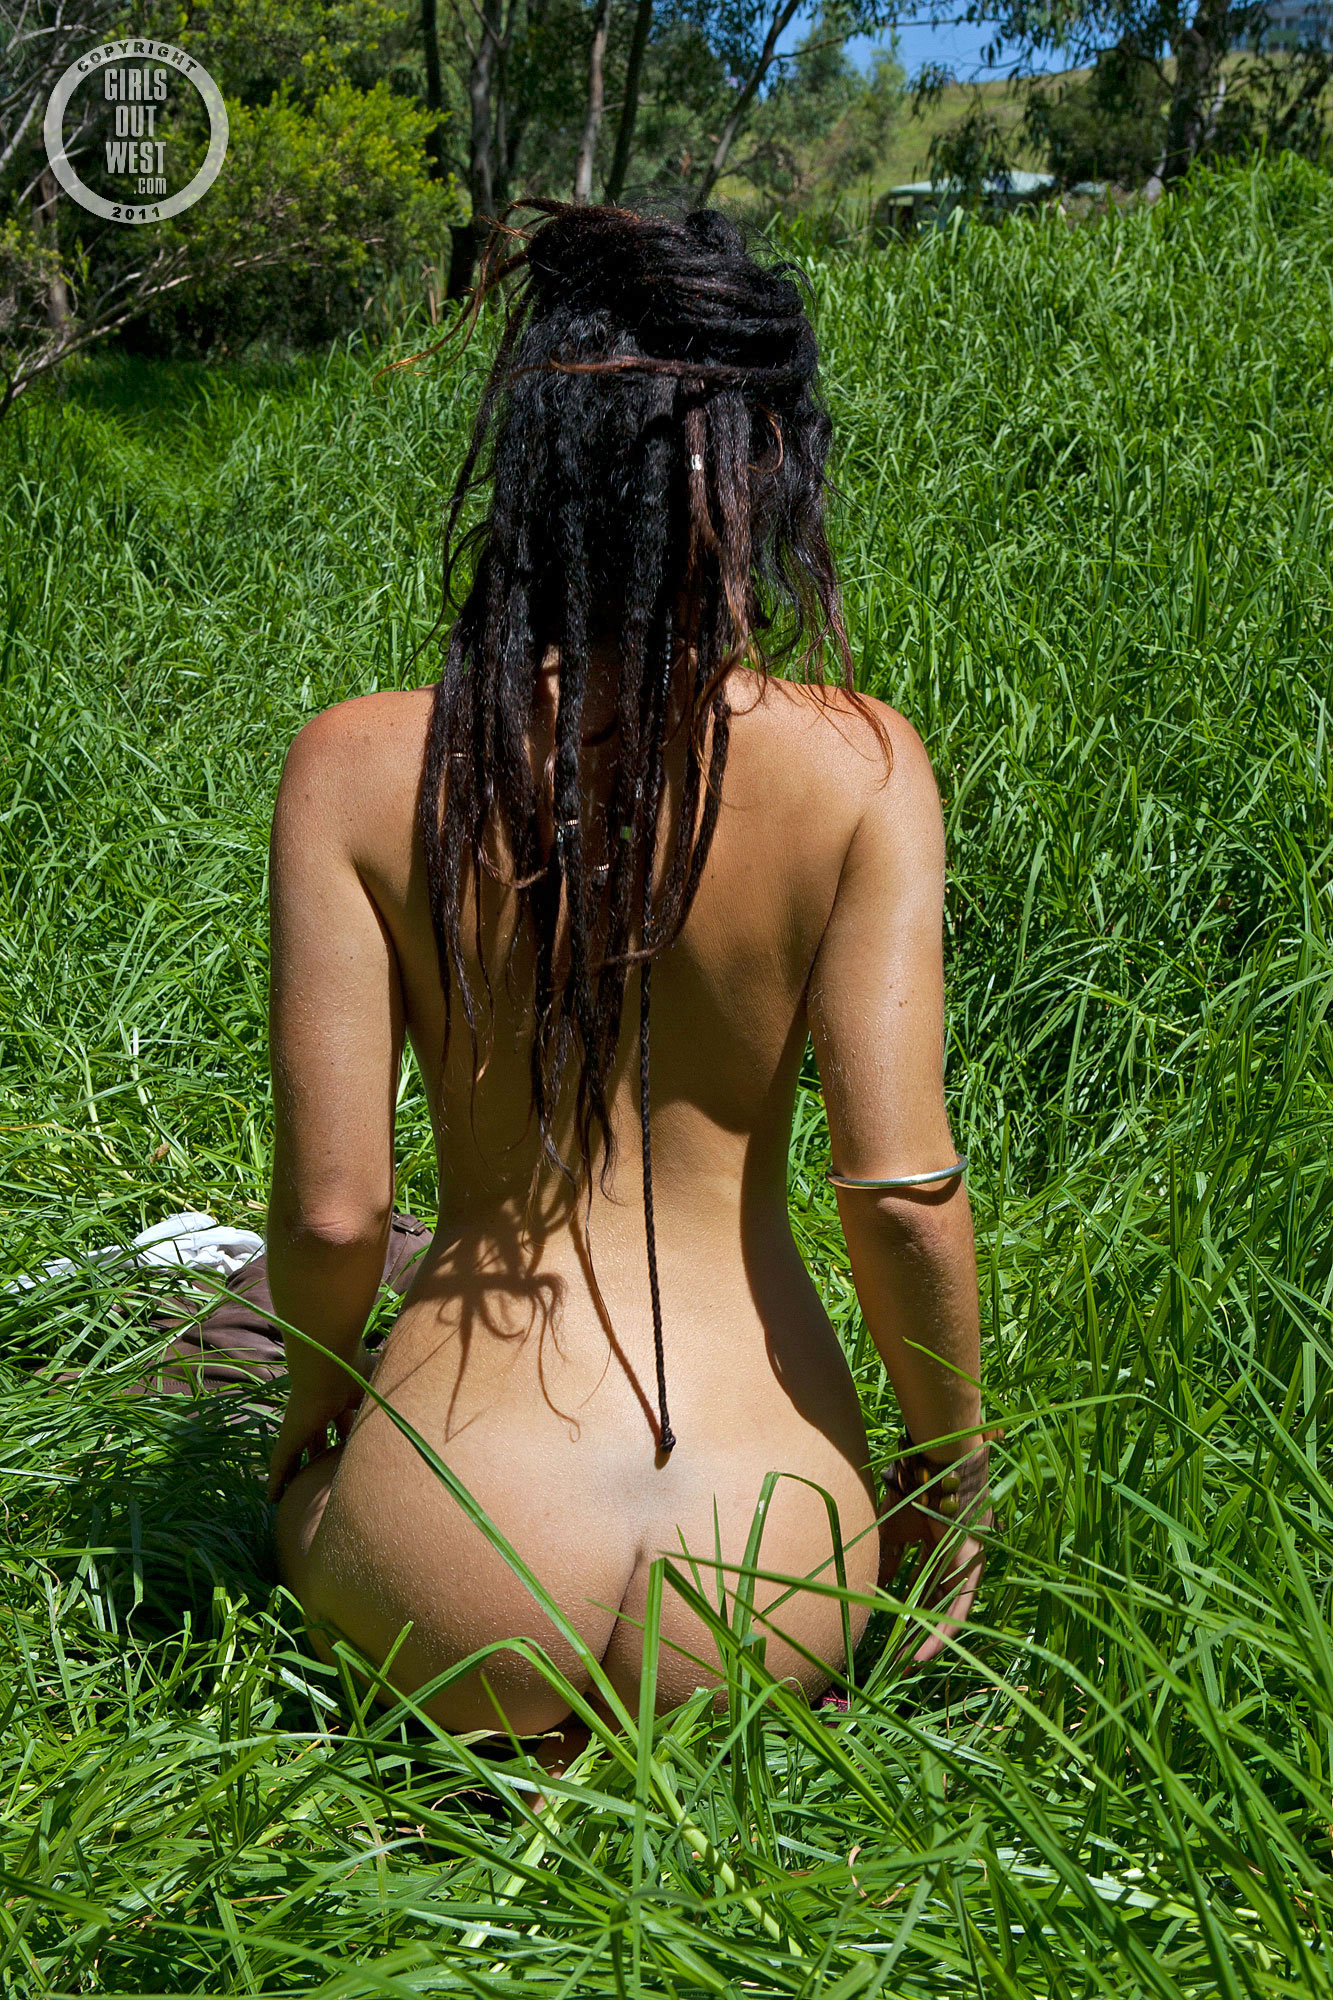 Hippie nudist gallery